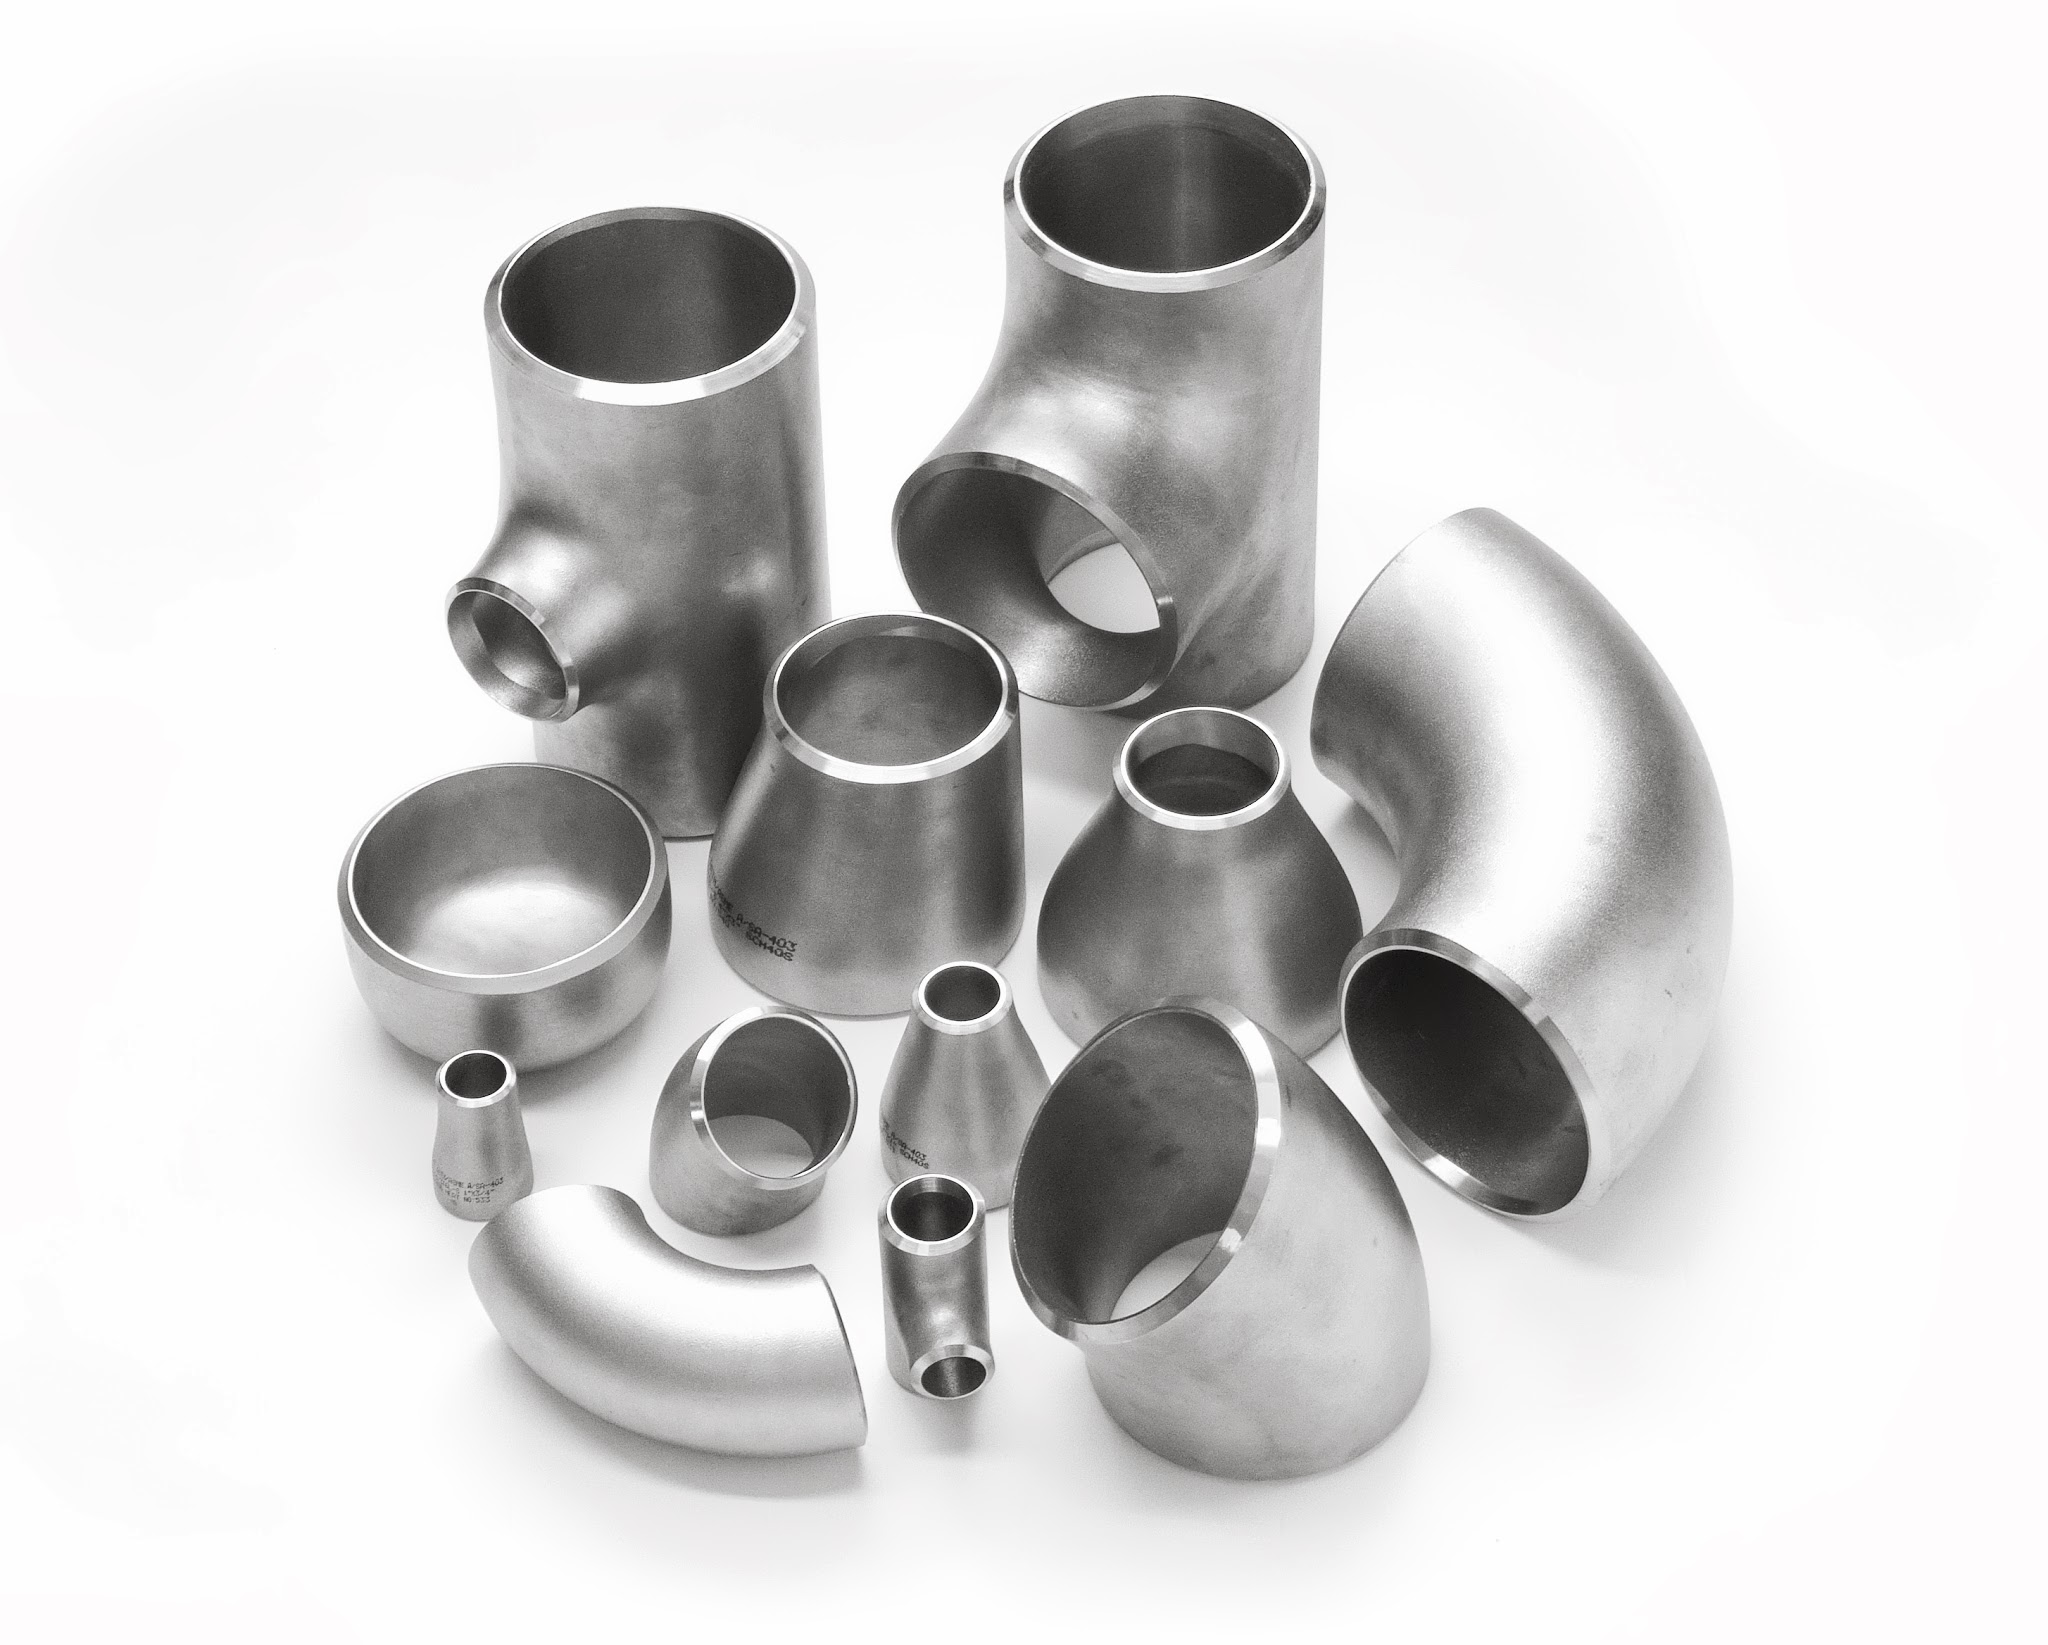 Delta Stainless Ltd